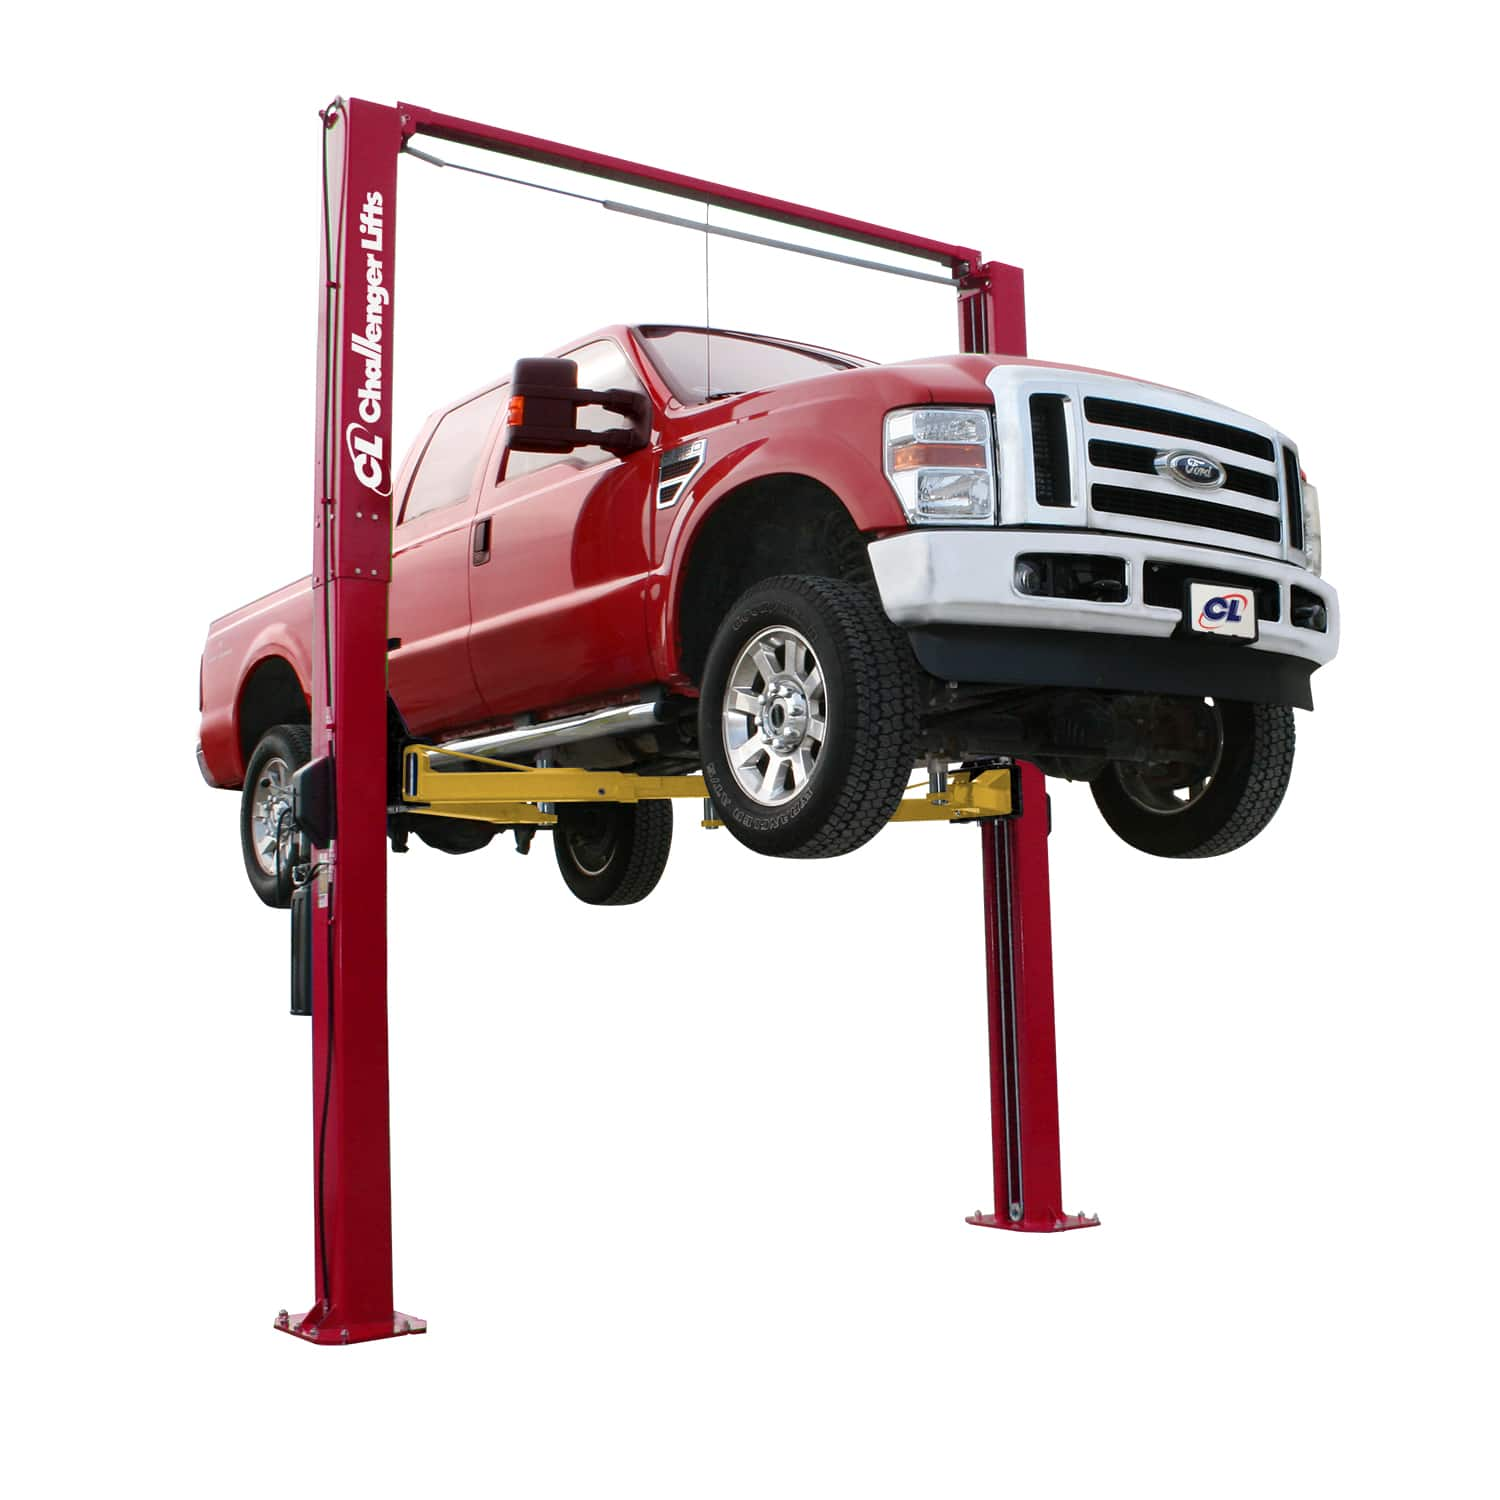 Challenger's E12 is the perfect economic 2-post lift for servicing trucks  and other vehicles up to 12,000 lbs. Heavy-duty 2-stage front and 2-stage  rear ...